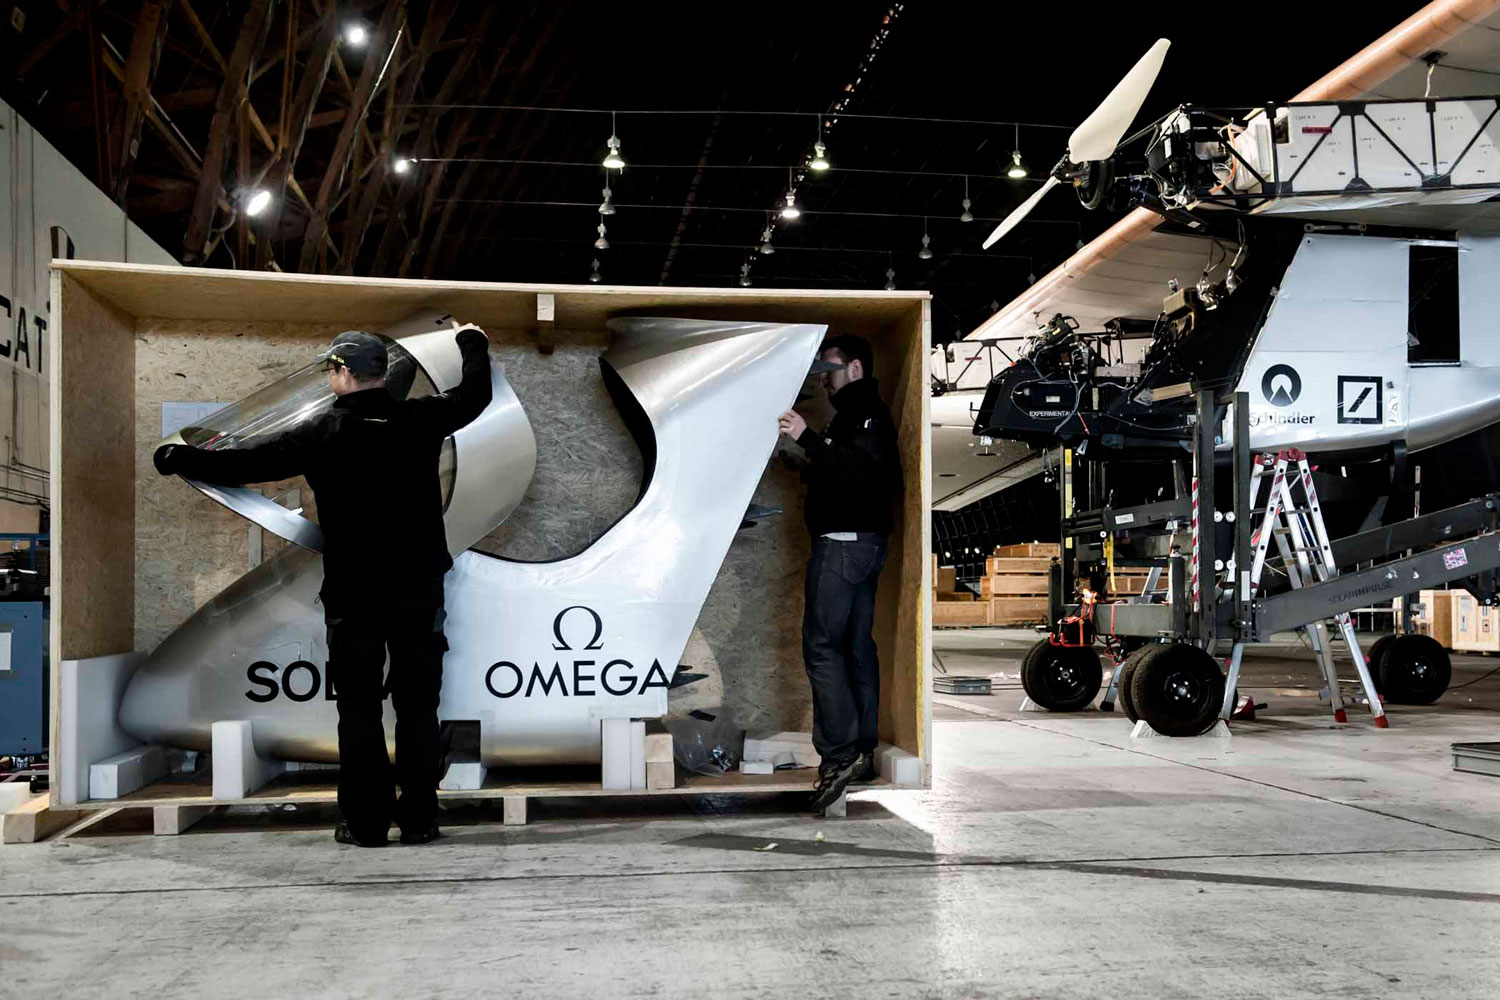 Solar Impulse's HB-SIA prototype is reassembled after arriving from Switzerland on board a Boeing 747 cargo plane.